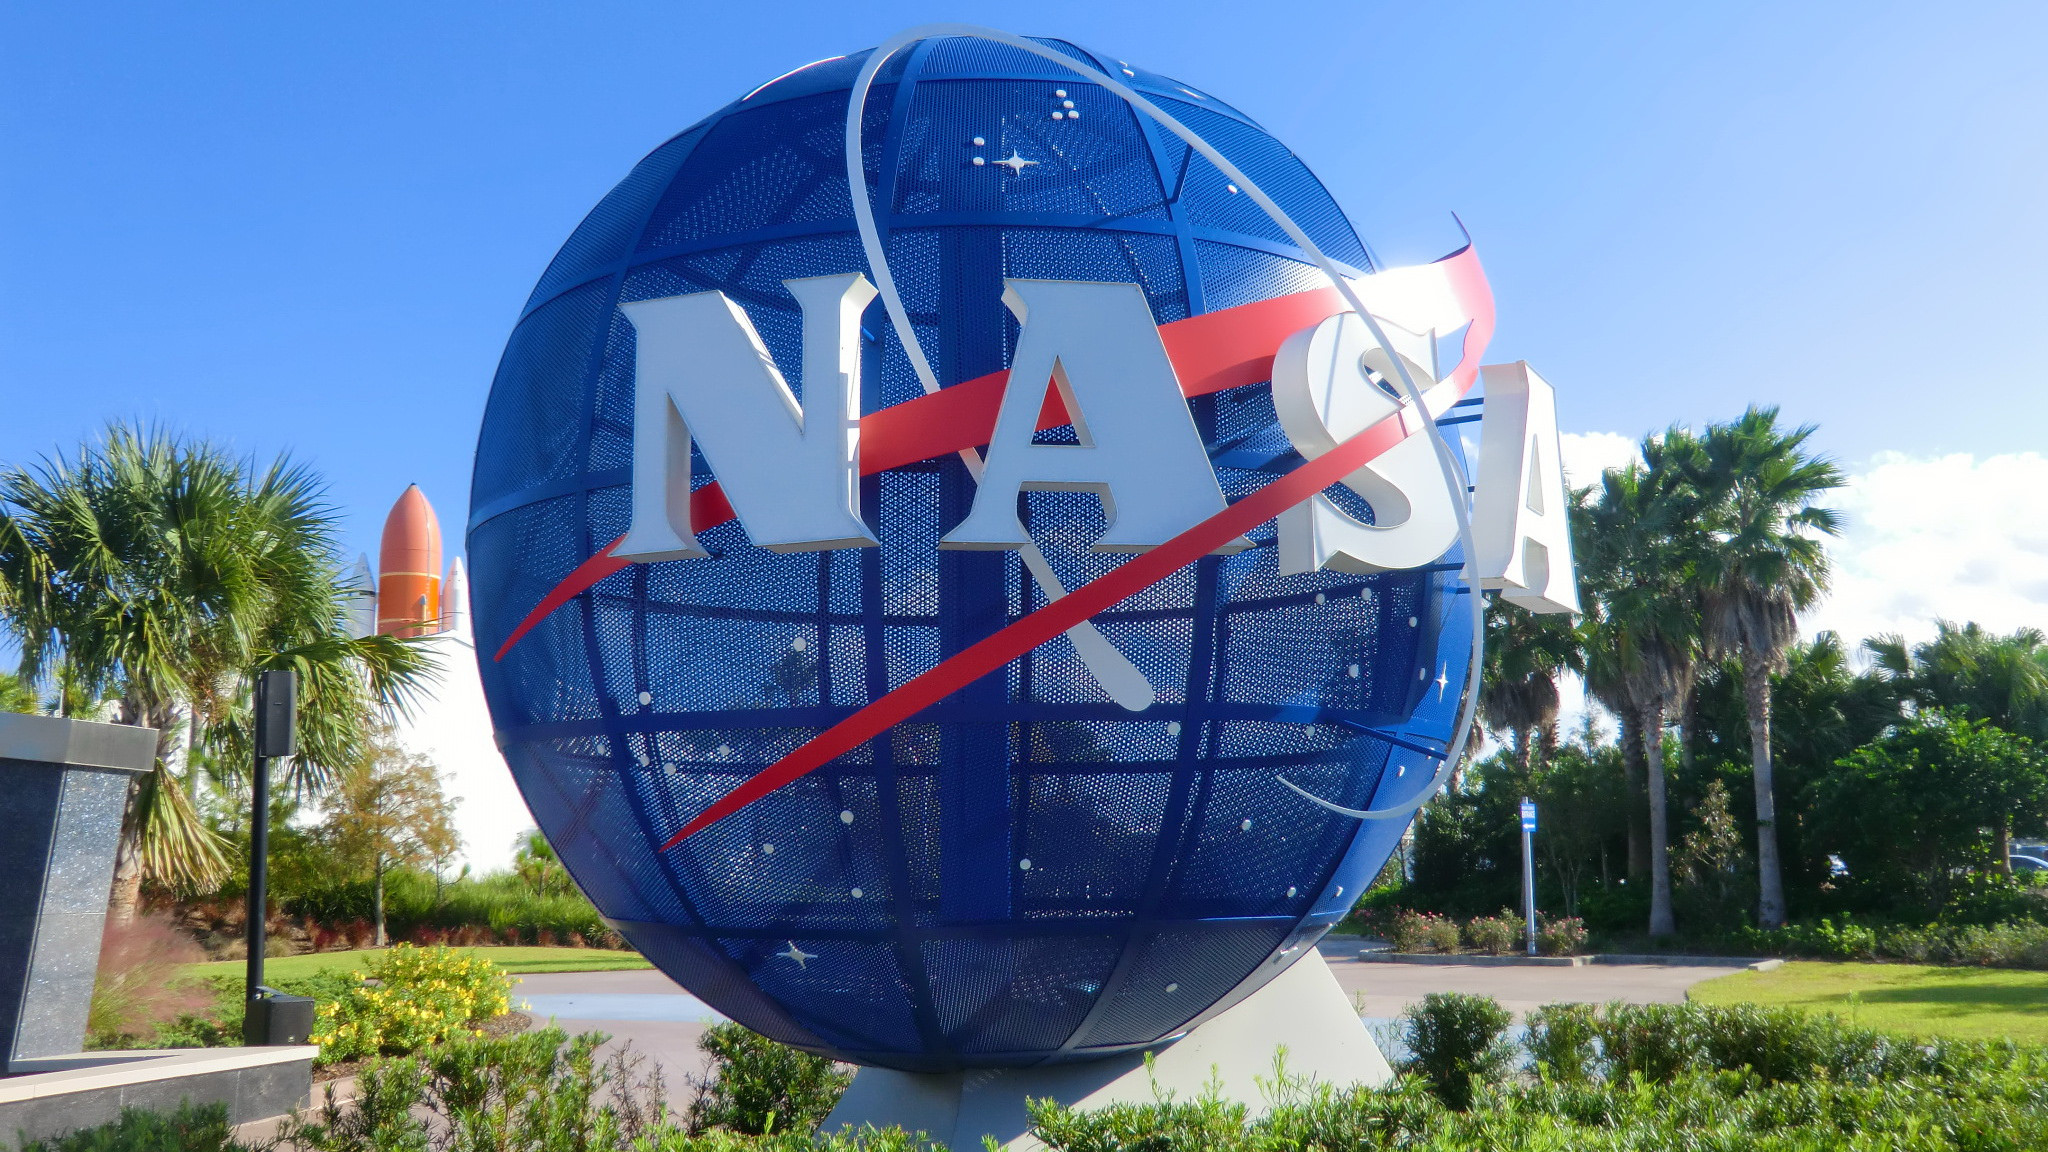 NASA Kennedy Space Center, Cape Canaveral (Florida), Reinhard Link October 25, 2014